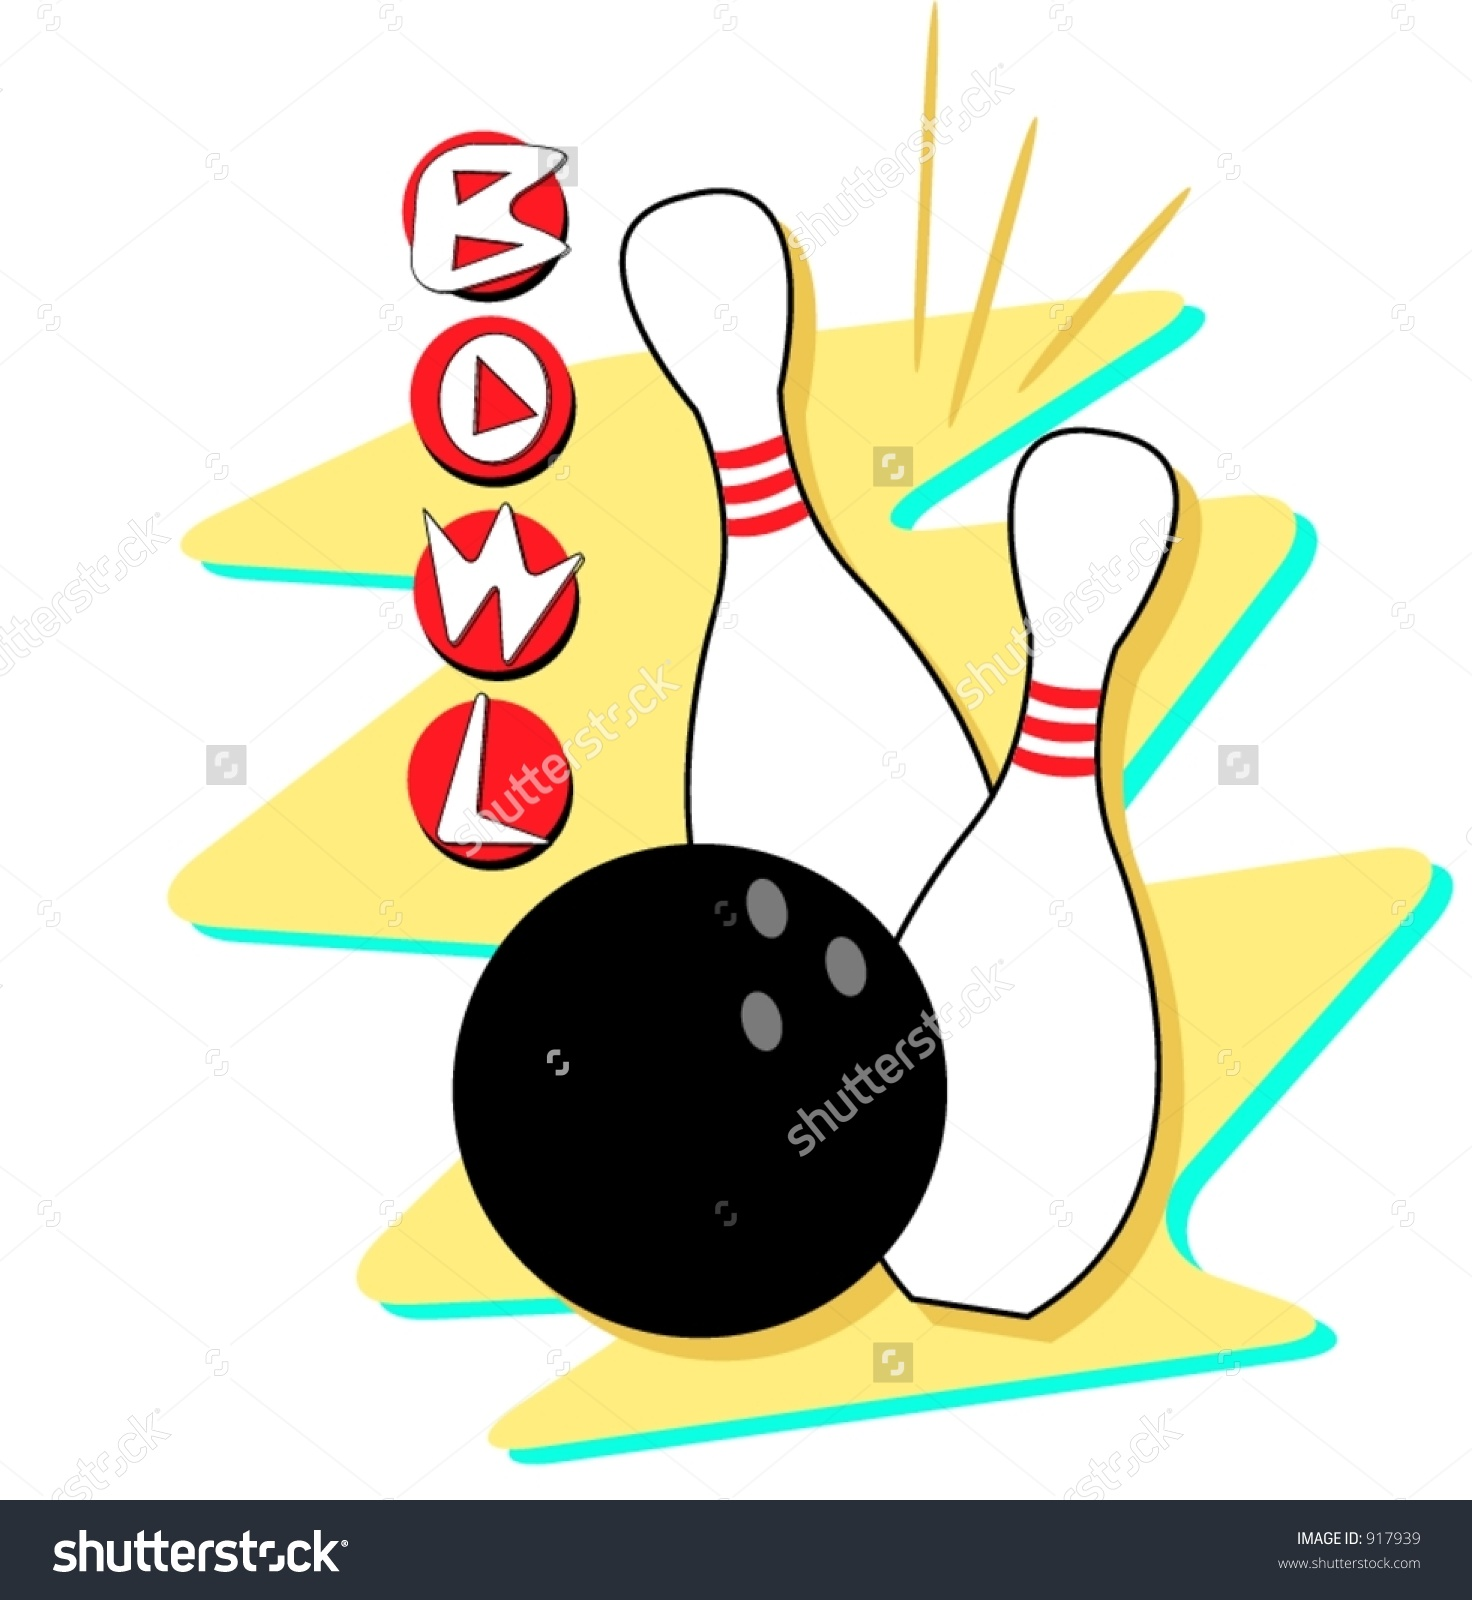 Retro styled bowling clip art. Fully scalable and editable vector art.